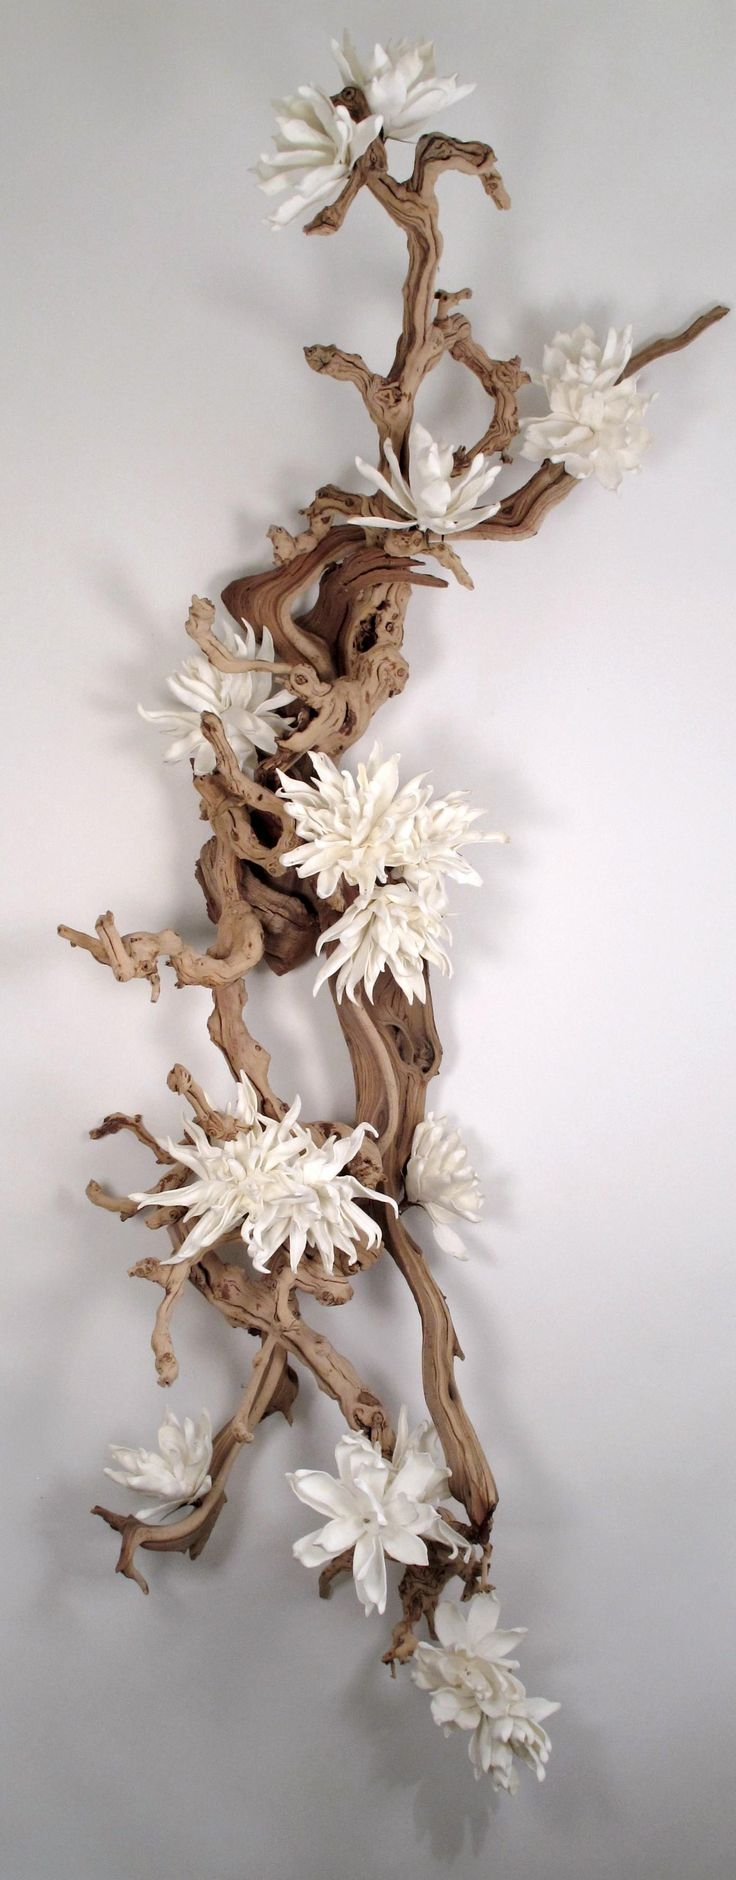 """Ghostwood and Grapewood with White Magnolias - Wall hanging - 80""""H x 36""""W x 13""""D - FL5036 from LDF Silk"""